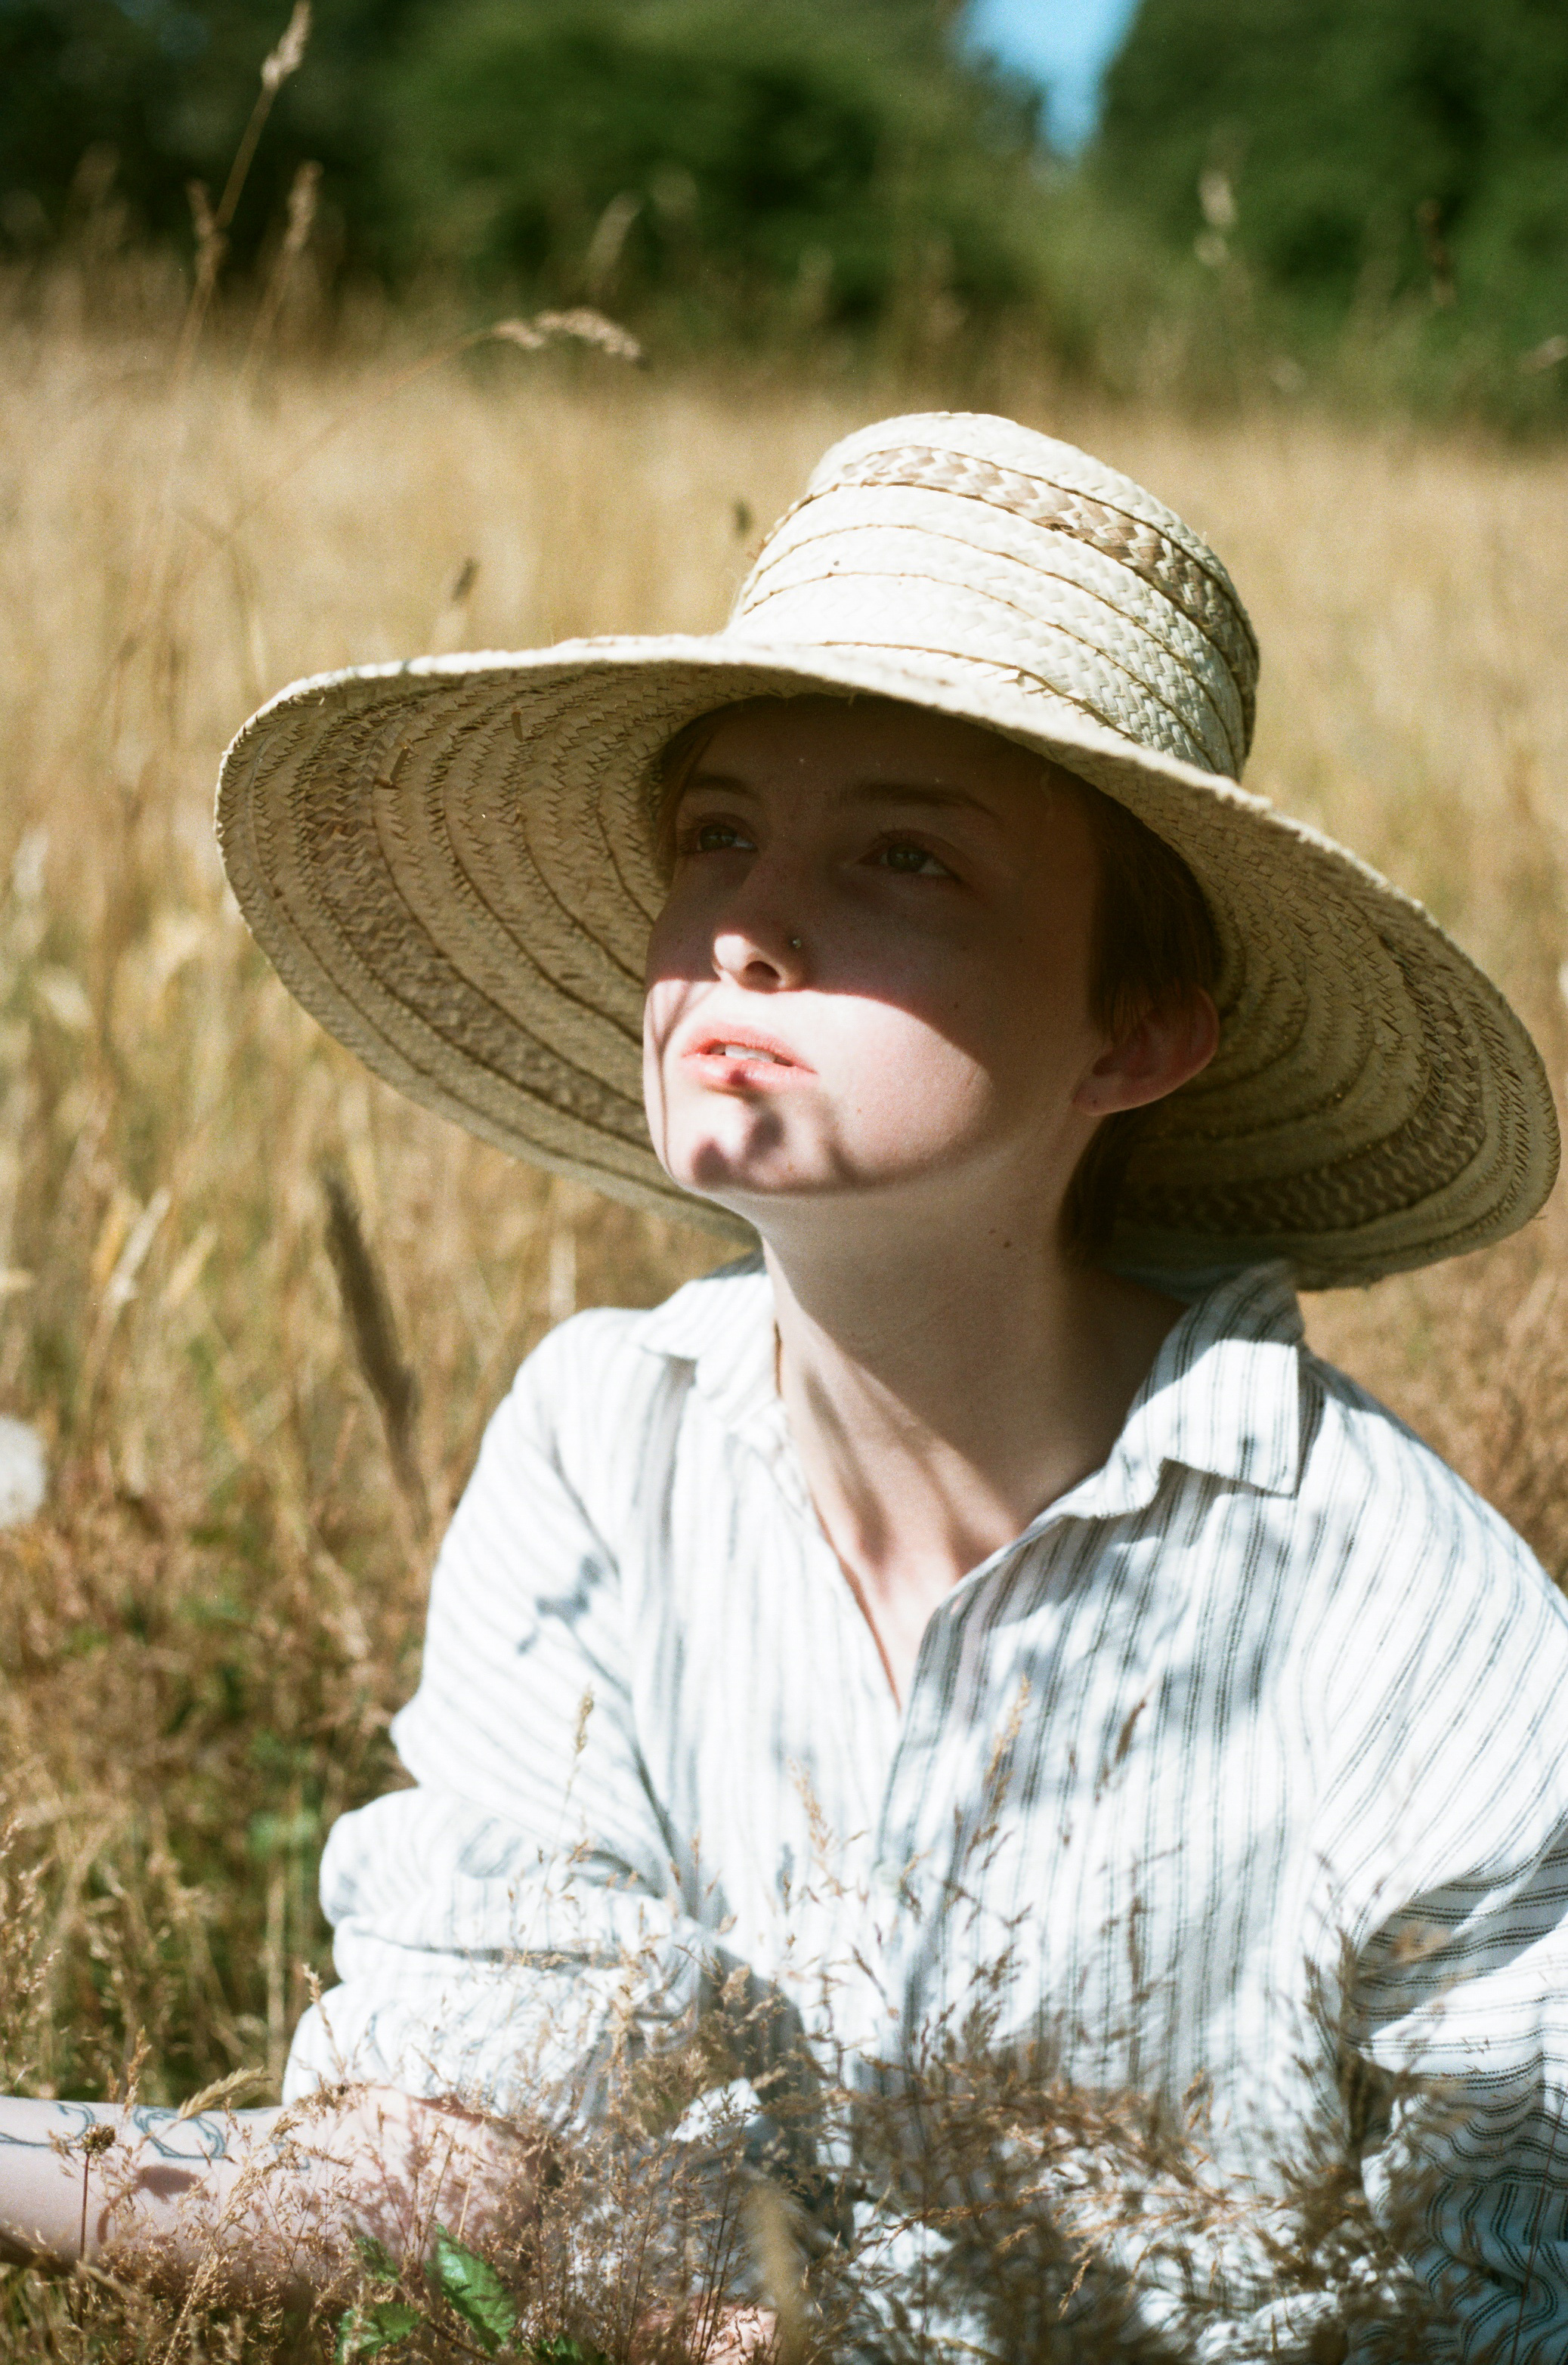 girl in straw hat in a grassy field, victoria bc fashion editorial OPEN HOUSE